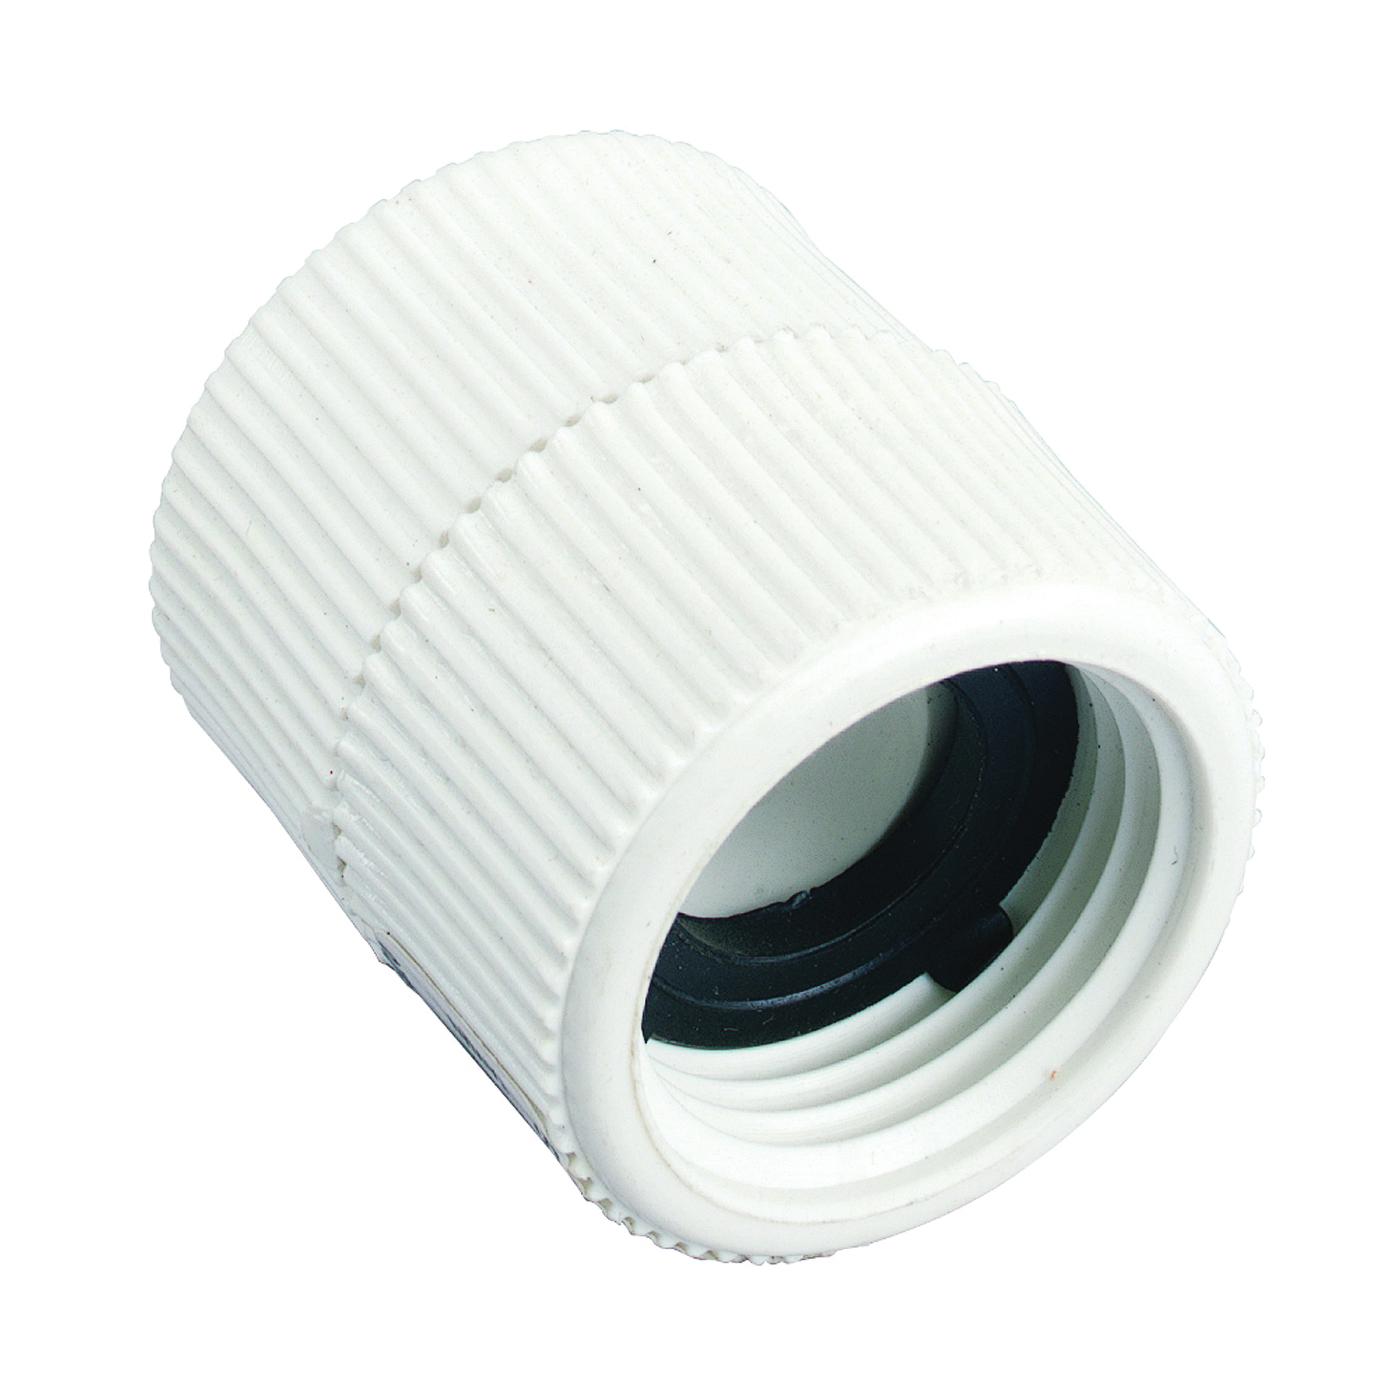 Picture of Orbit 53363 Hose to Pipe Adapter, 3/4 x 3/4 in, FNPT x FHT, Polyvinyl Chloride, White